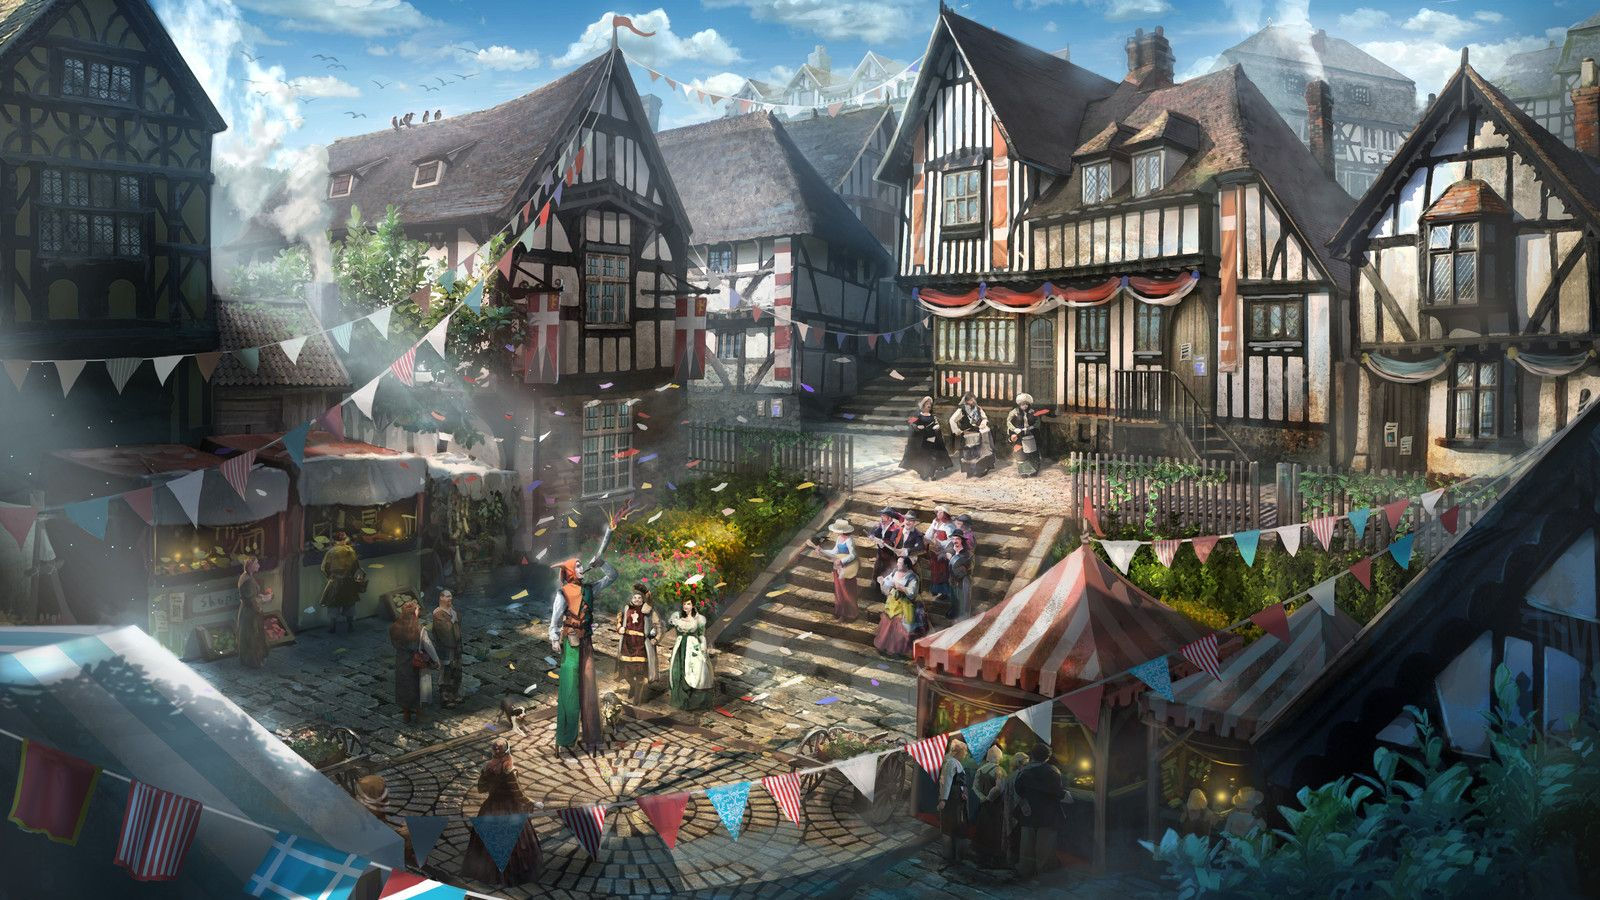 The Festival Of The Middle Ages Taehoon Kang On Artstation At Https Www Artstation Com Artwork Vb2ga Fantasy City Fantasy Art Landscapes Fantasy Landscape